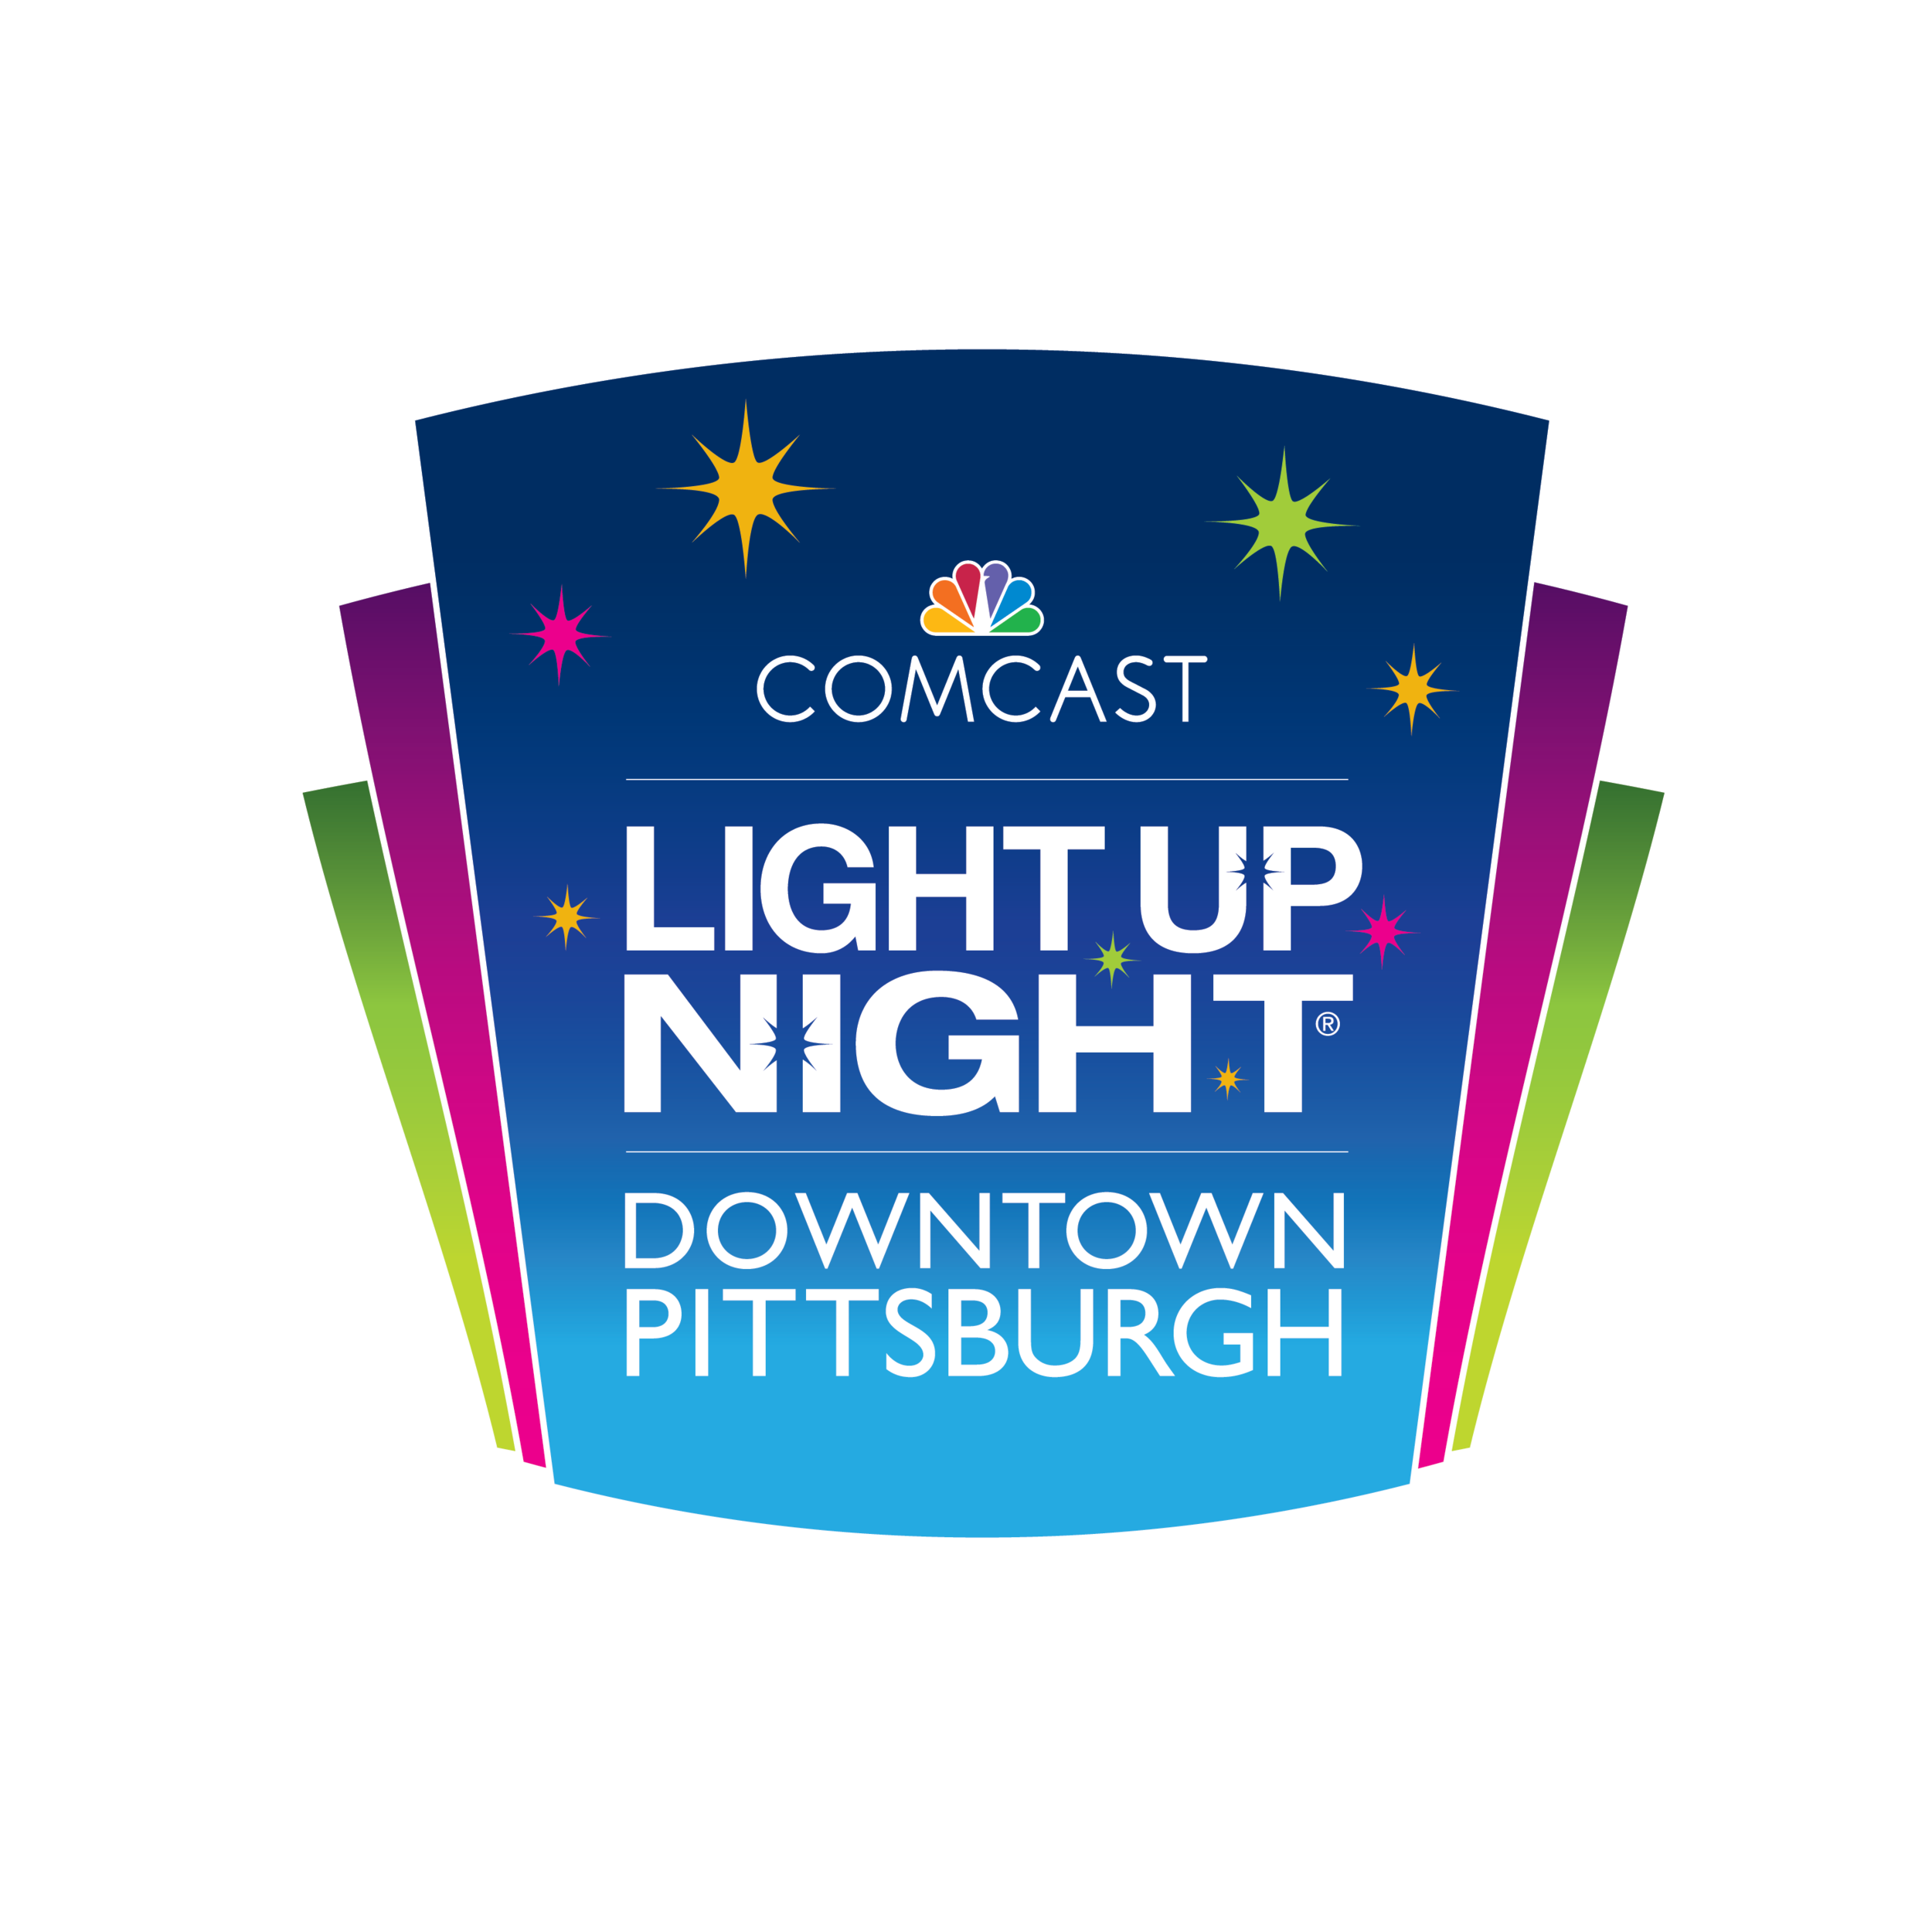 Pittsburgh S Light Up Night Canceled In 2020 Downtown Pittsburgh For The Holidays